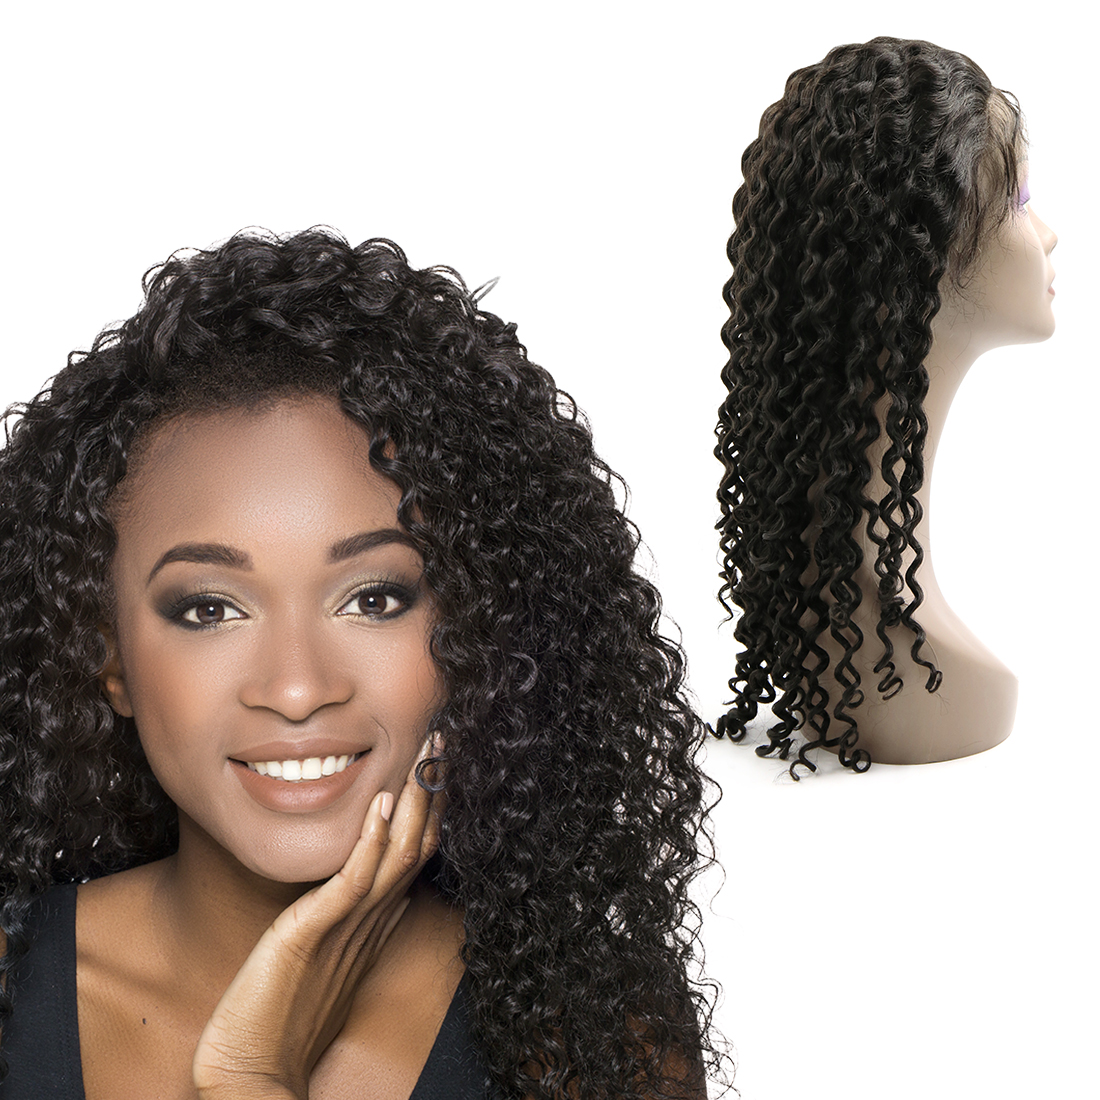 Lace Front Human Hair Wigs Glueless Brazilian Virgin Hair 7A Deep Curly 24""